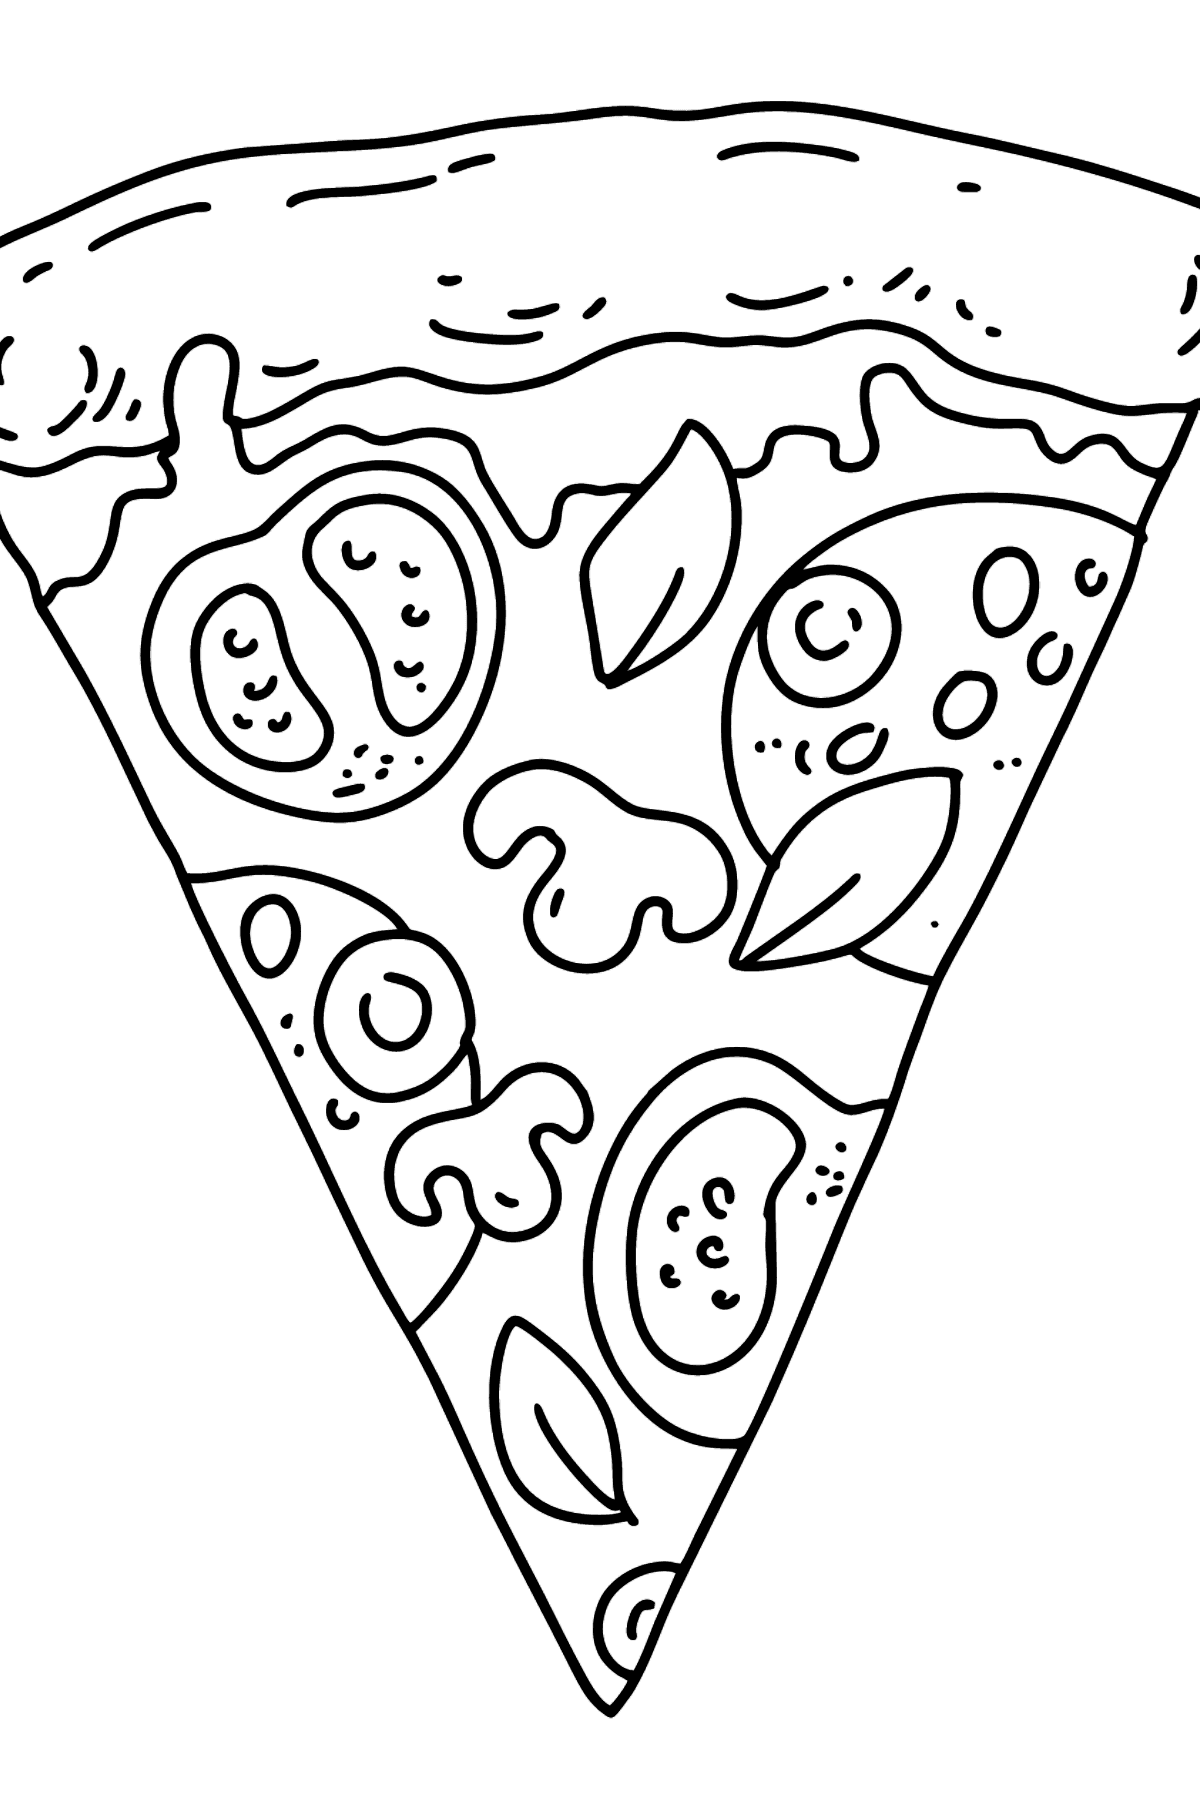 Pizza with Tomatoes and Mushrooms coloring page - Coloring Pages for Kids